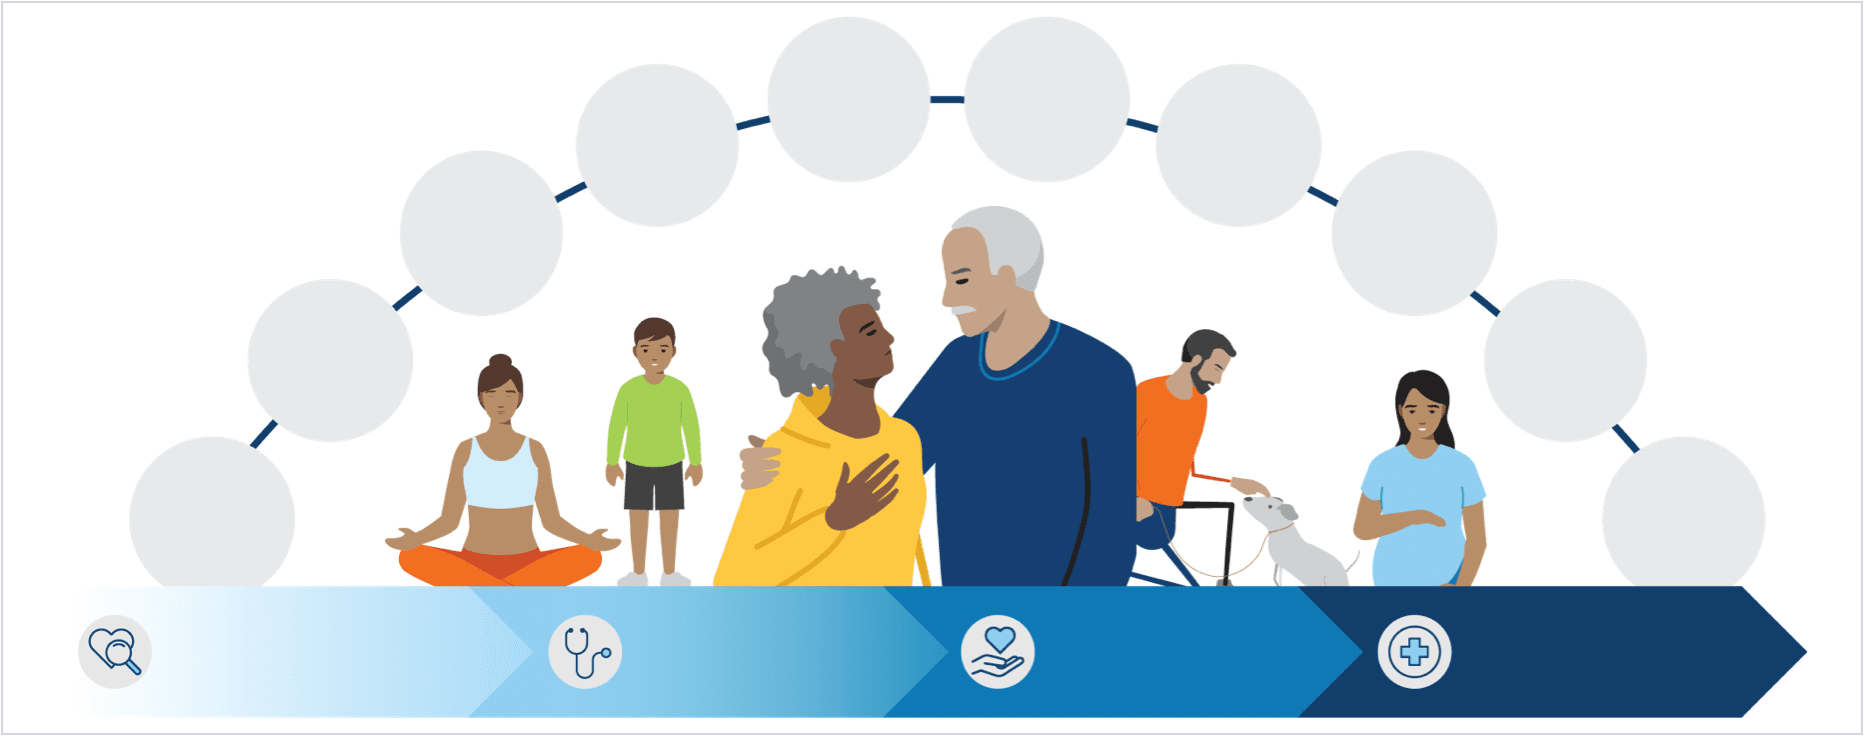 Infographic showing a list of K P  mental health services in an arch above images of a pregnant woman, a child, an older couple, a man with a walker and a dog and pregnant woman. Below this is a set of four arrows with the four levels of care these services are integrated into.